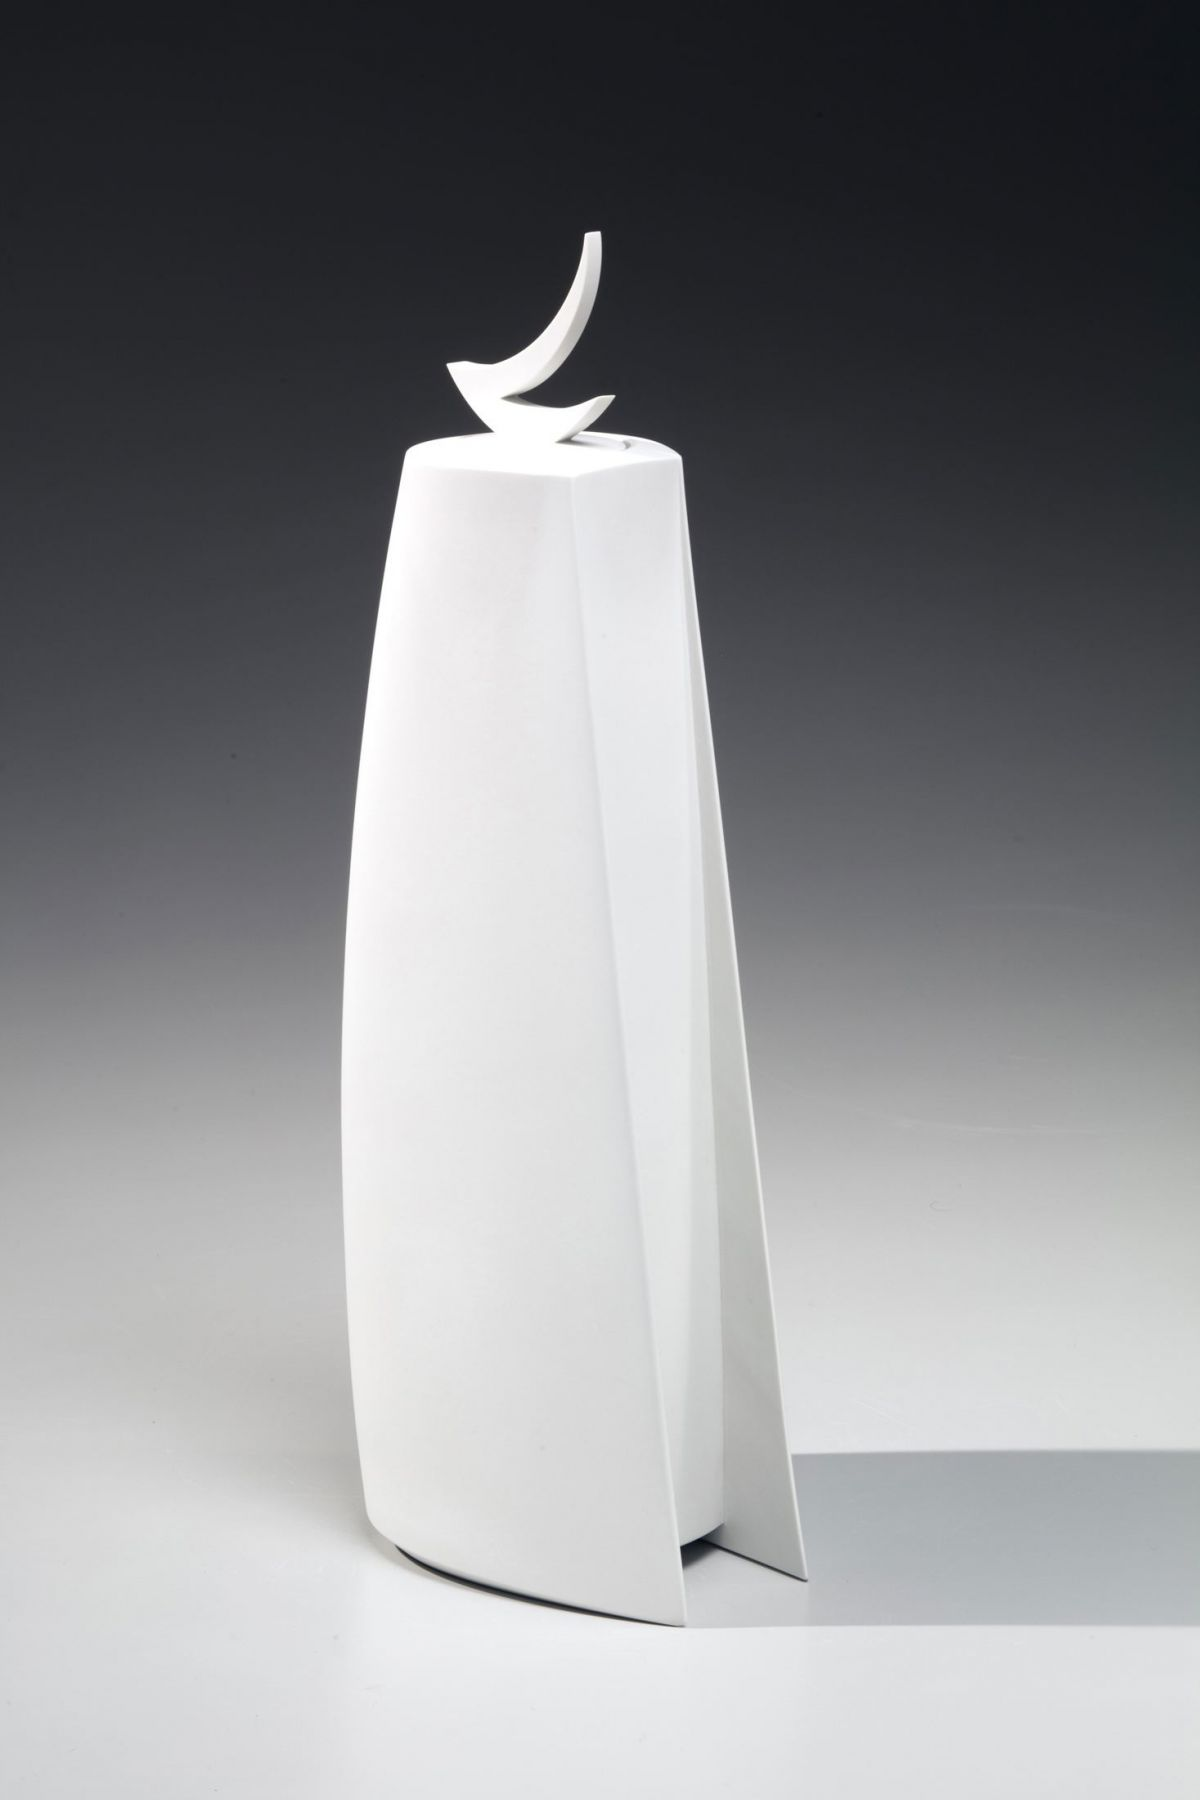 Standing narrow covered sculptural vessel, 2017